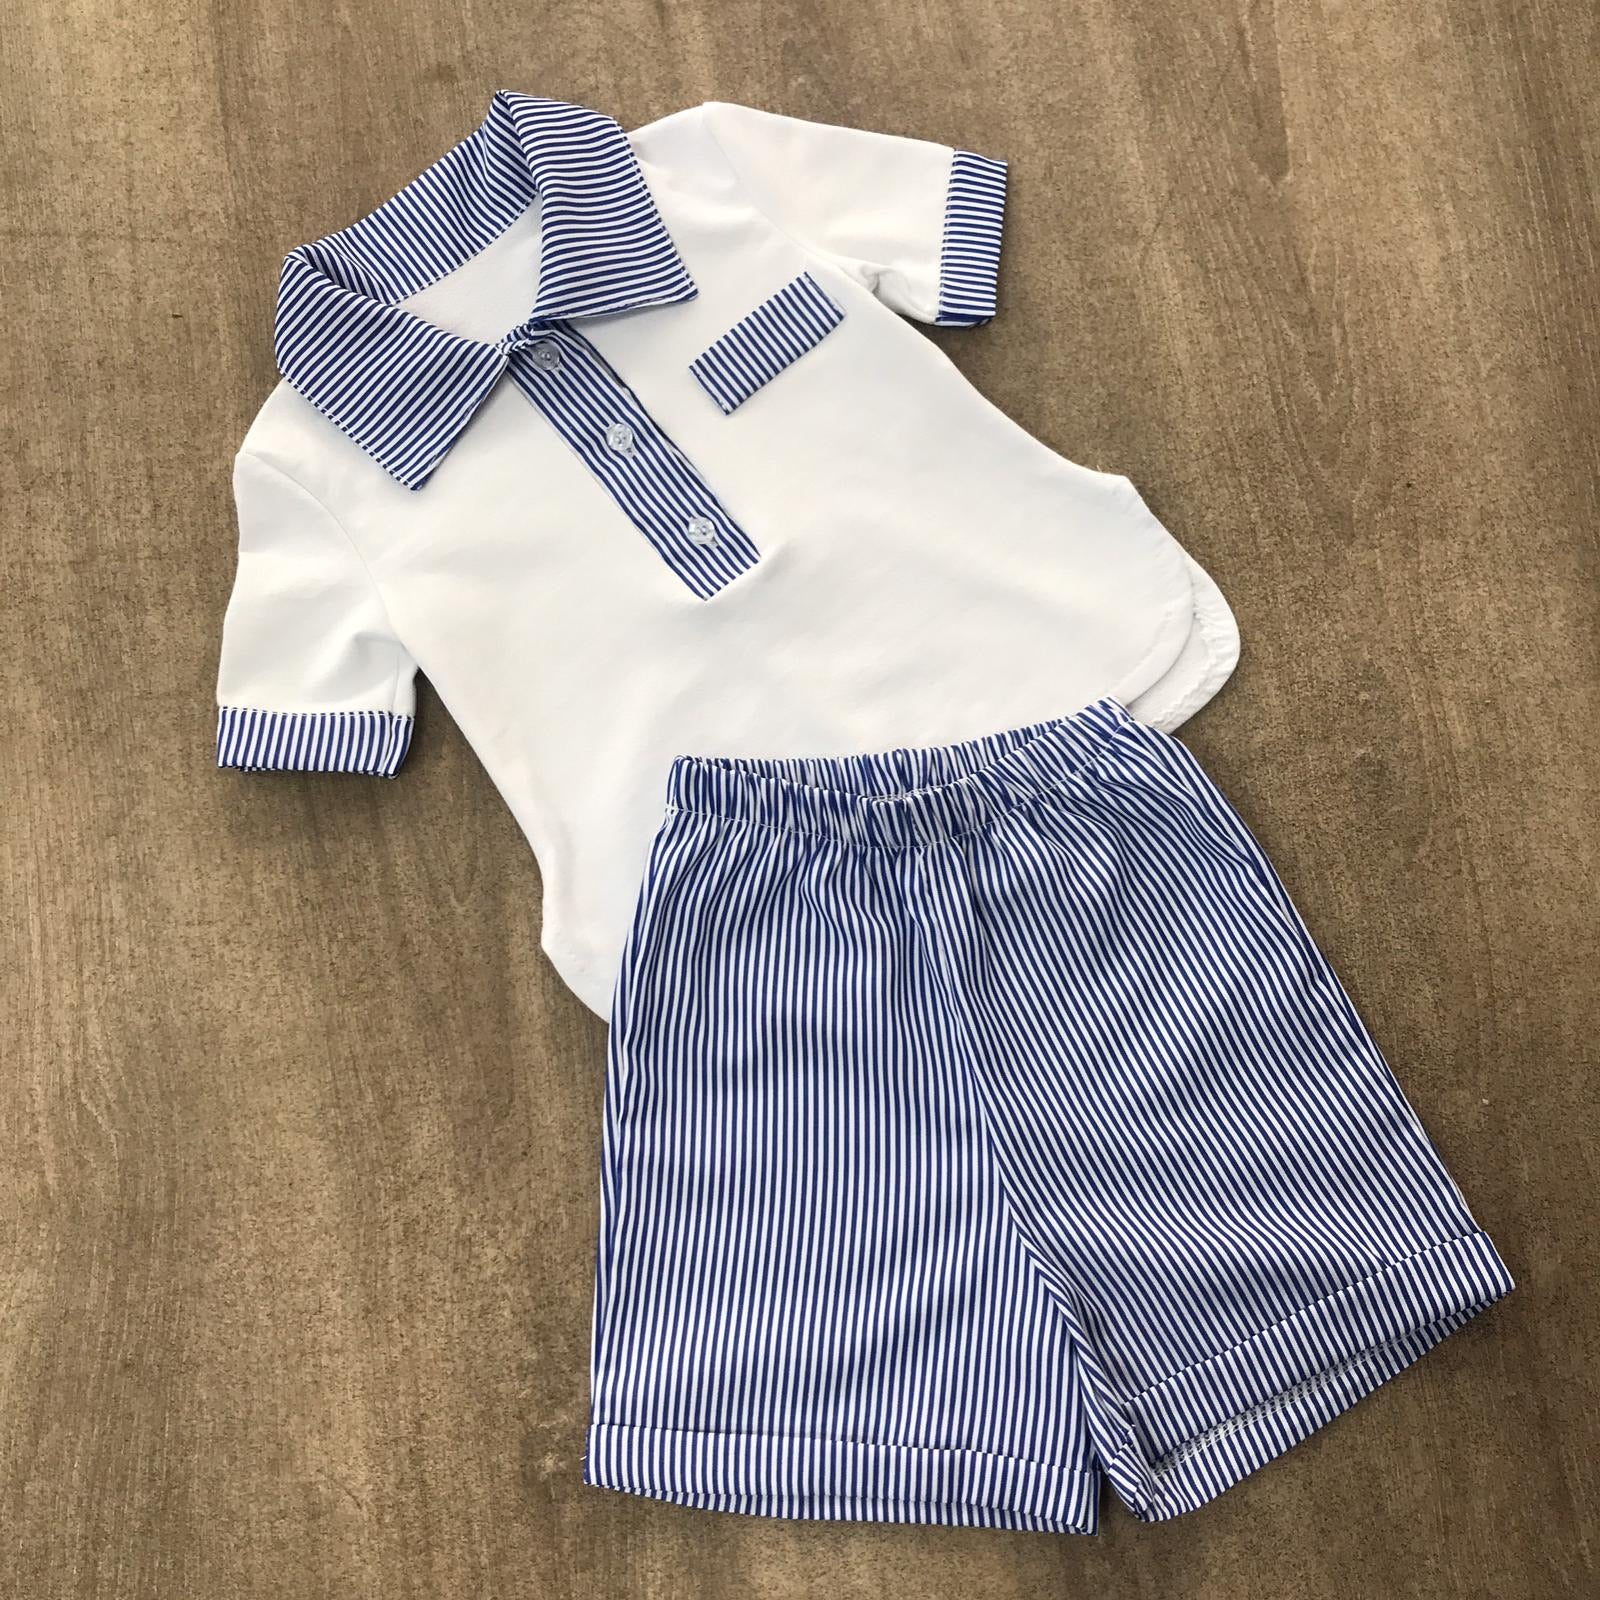 Cotton Striped Boys Short Set Blue